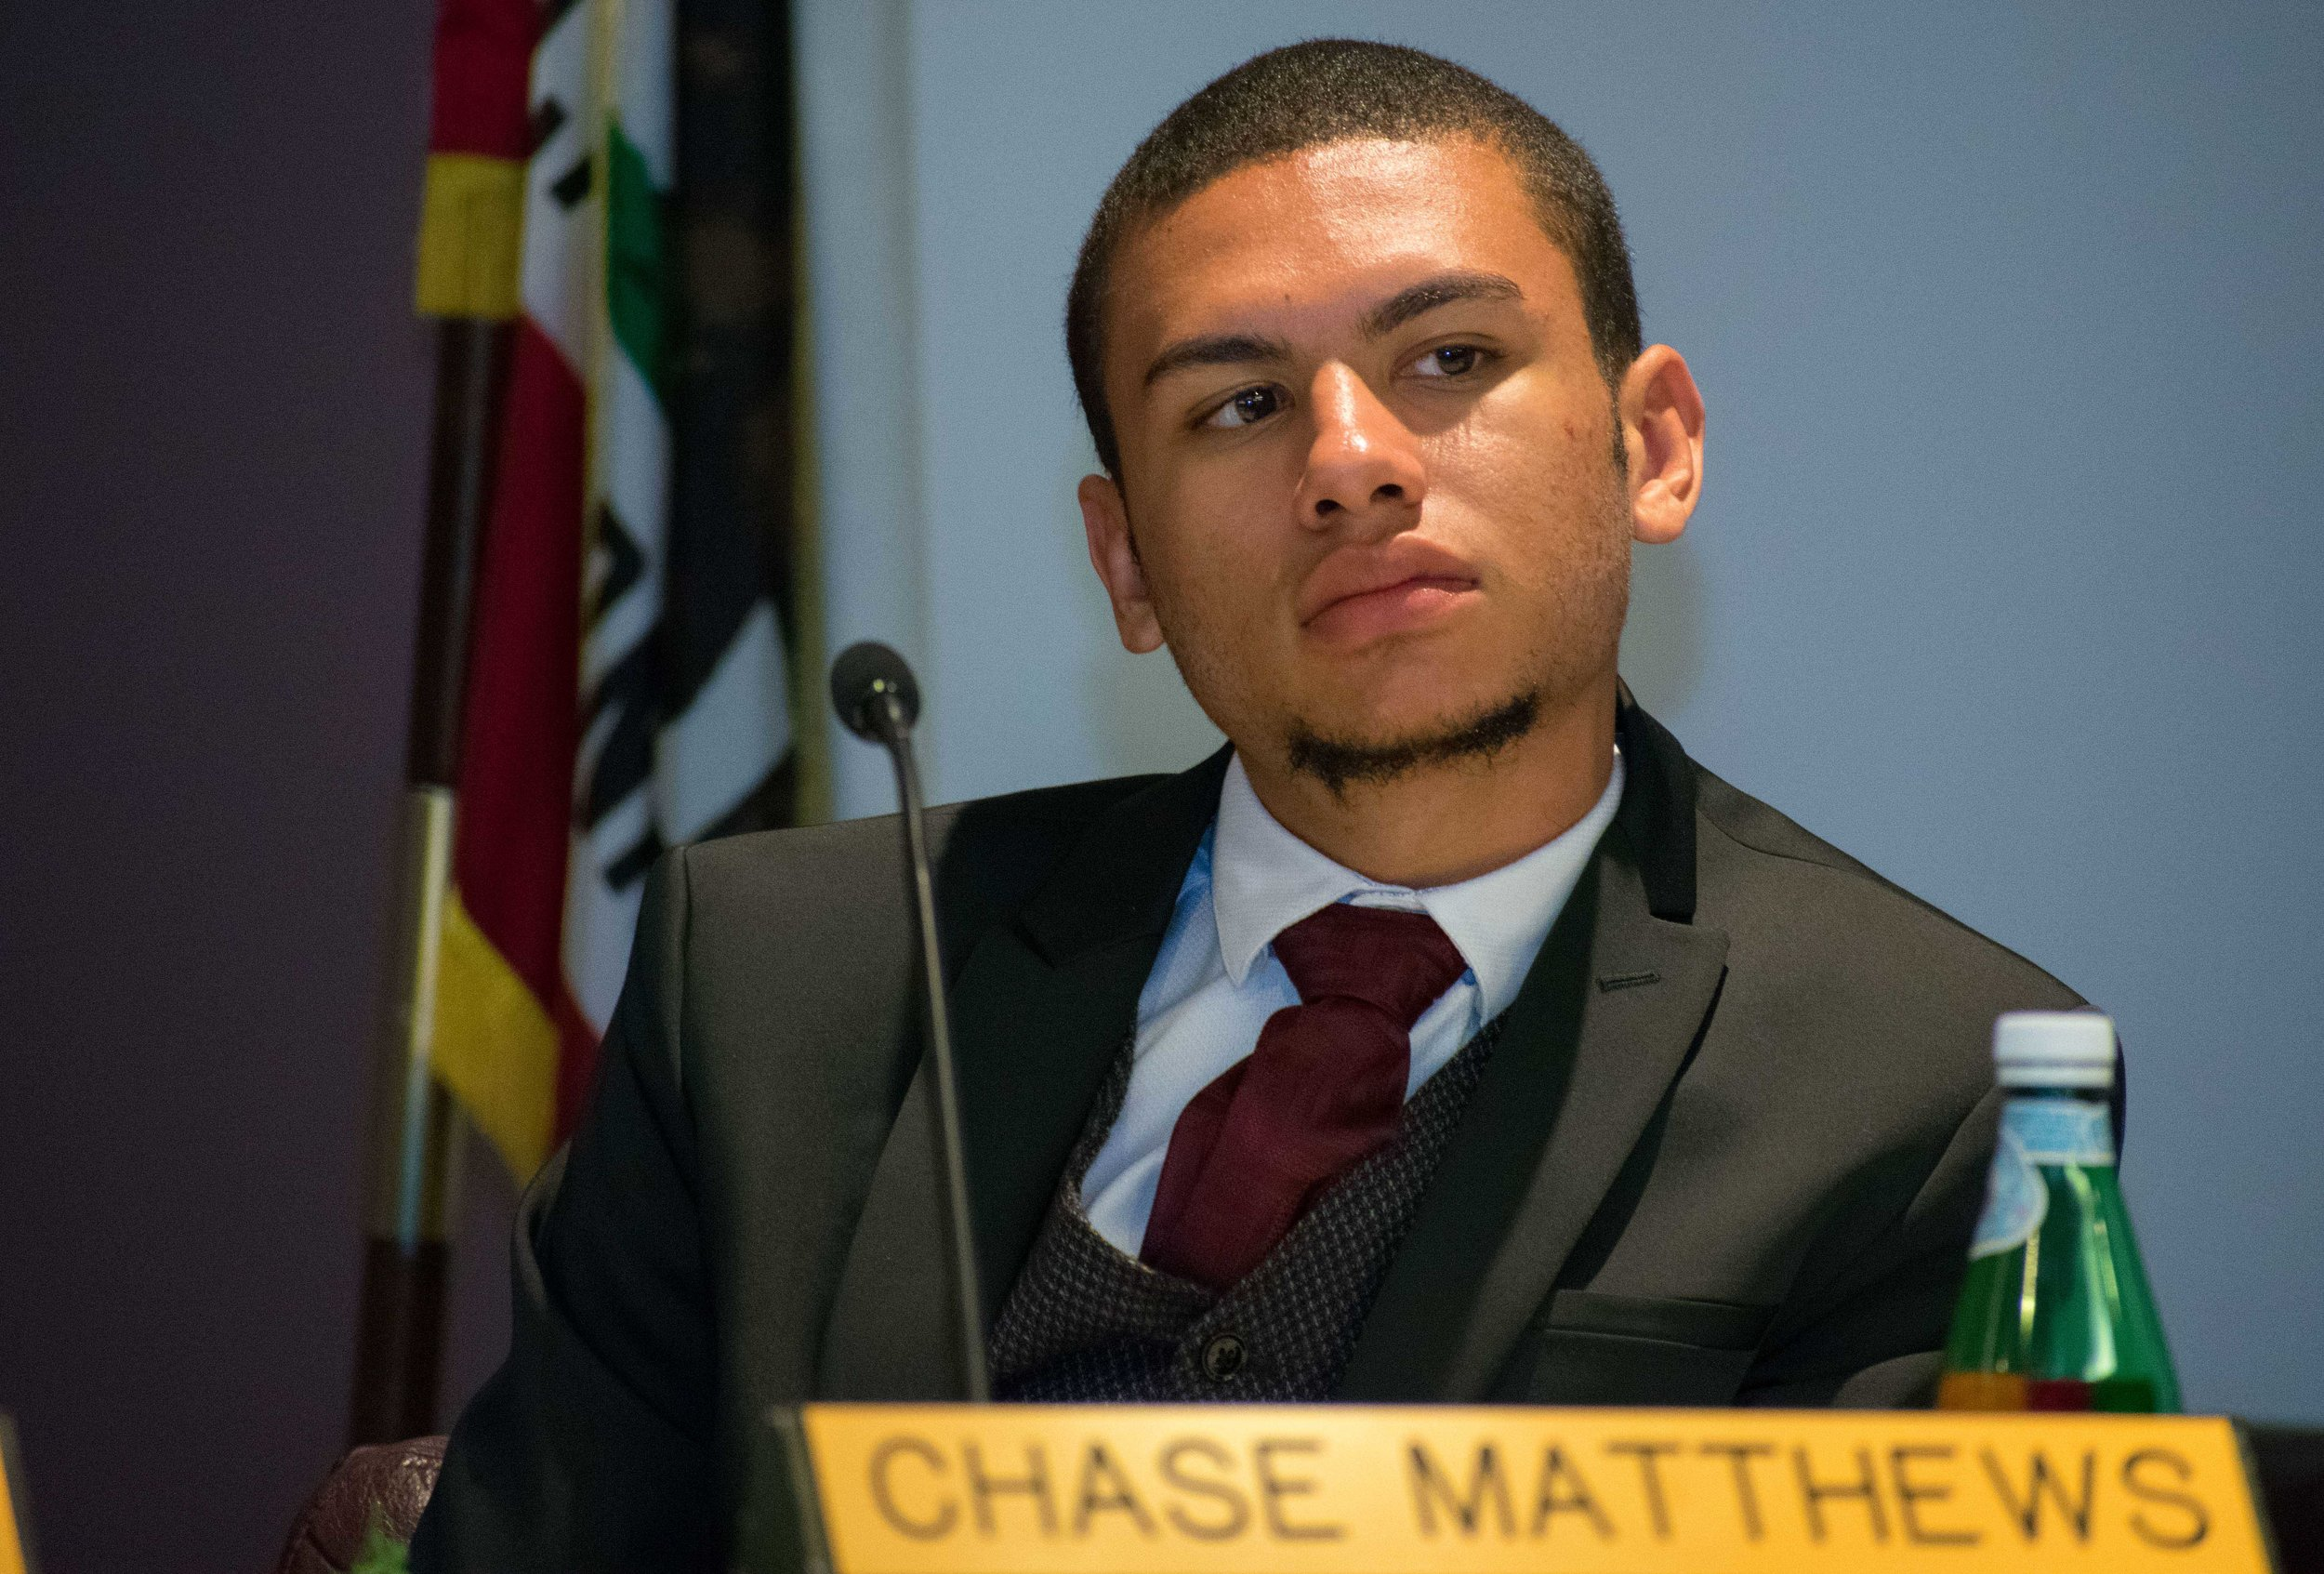 Student trustee Chase Matthews sits alongside the Santa Monica College board of trustees (not pictured) on Tuesday, April 3 during the monthly meetings at Santa Monica, California. Matthews was voted into the position by students at the college during the spring of 2017. (Ethan Lauren/Corsair Photo)